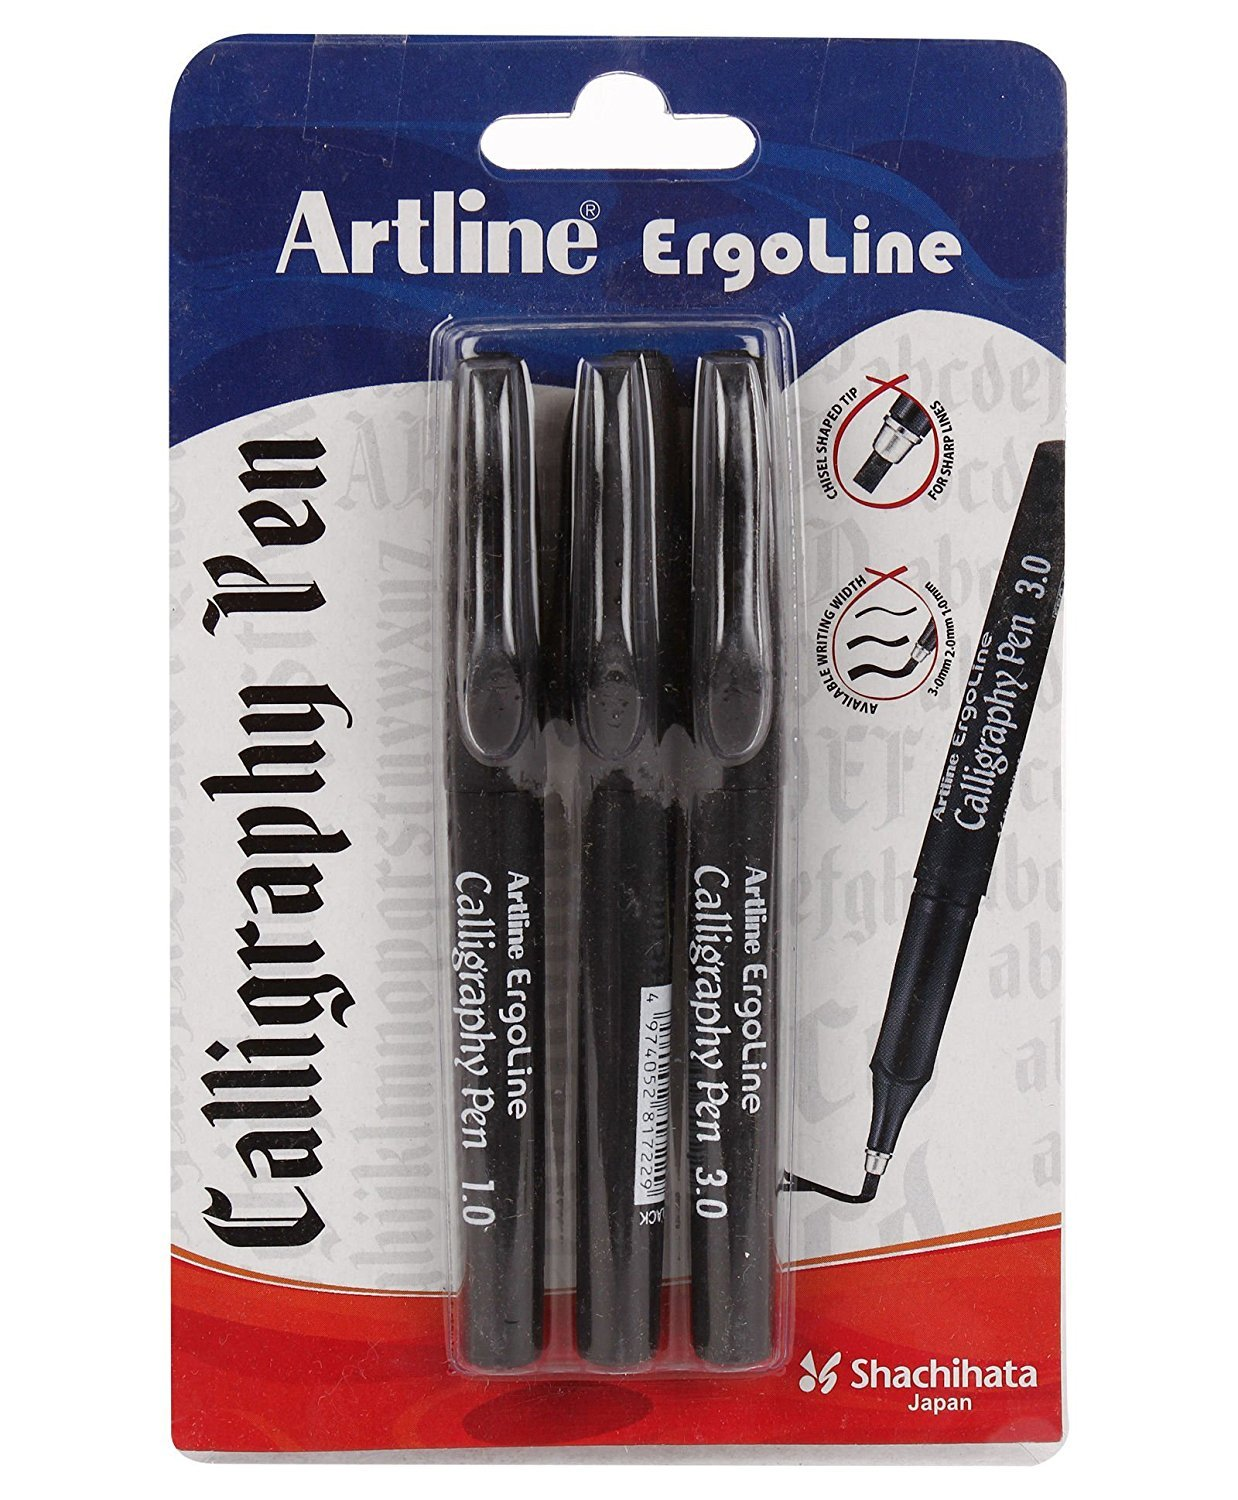 Artline Ergoline Calligraphy Pen Set with 3 Nib Sizes - Pack of 3 (BlUE)